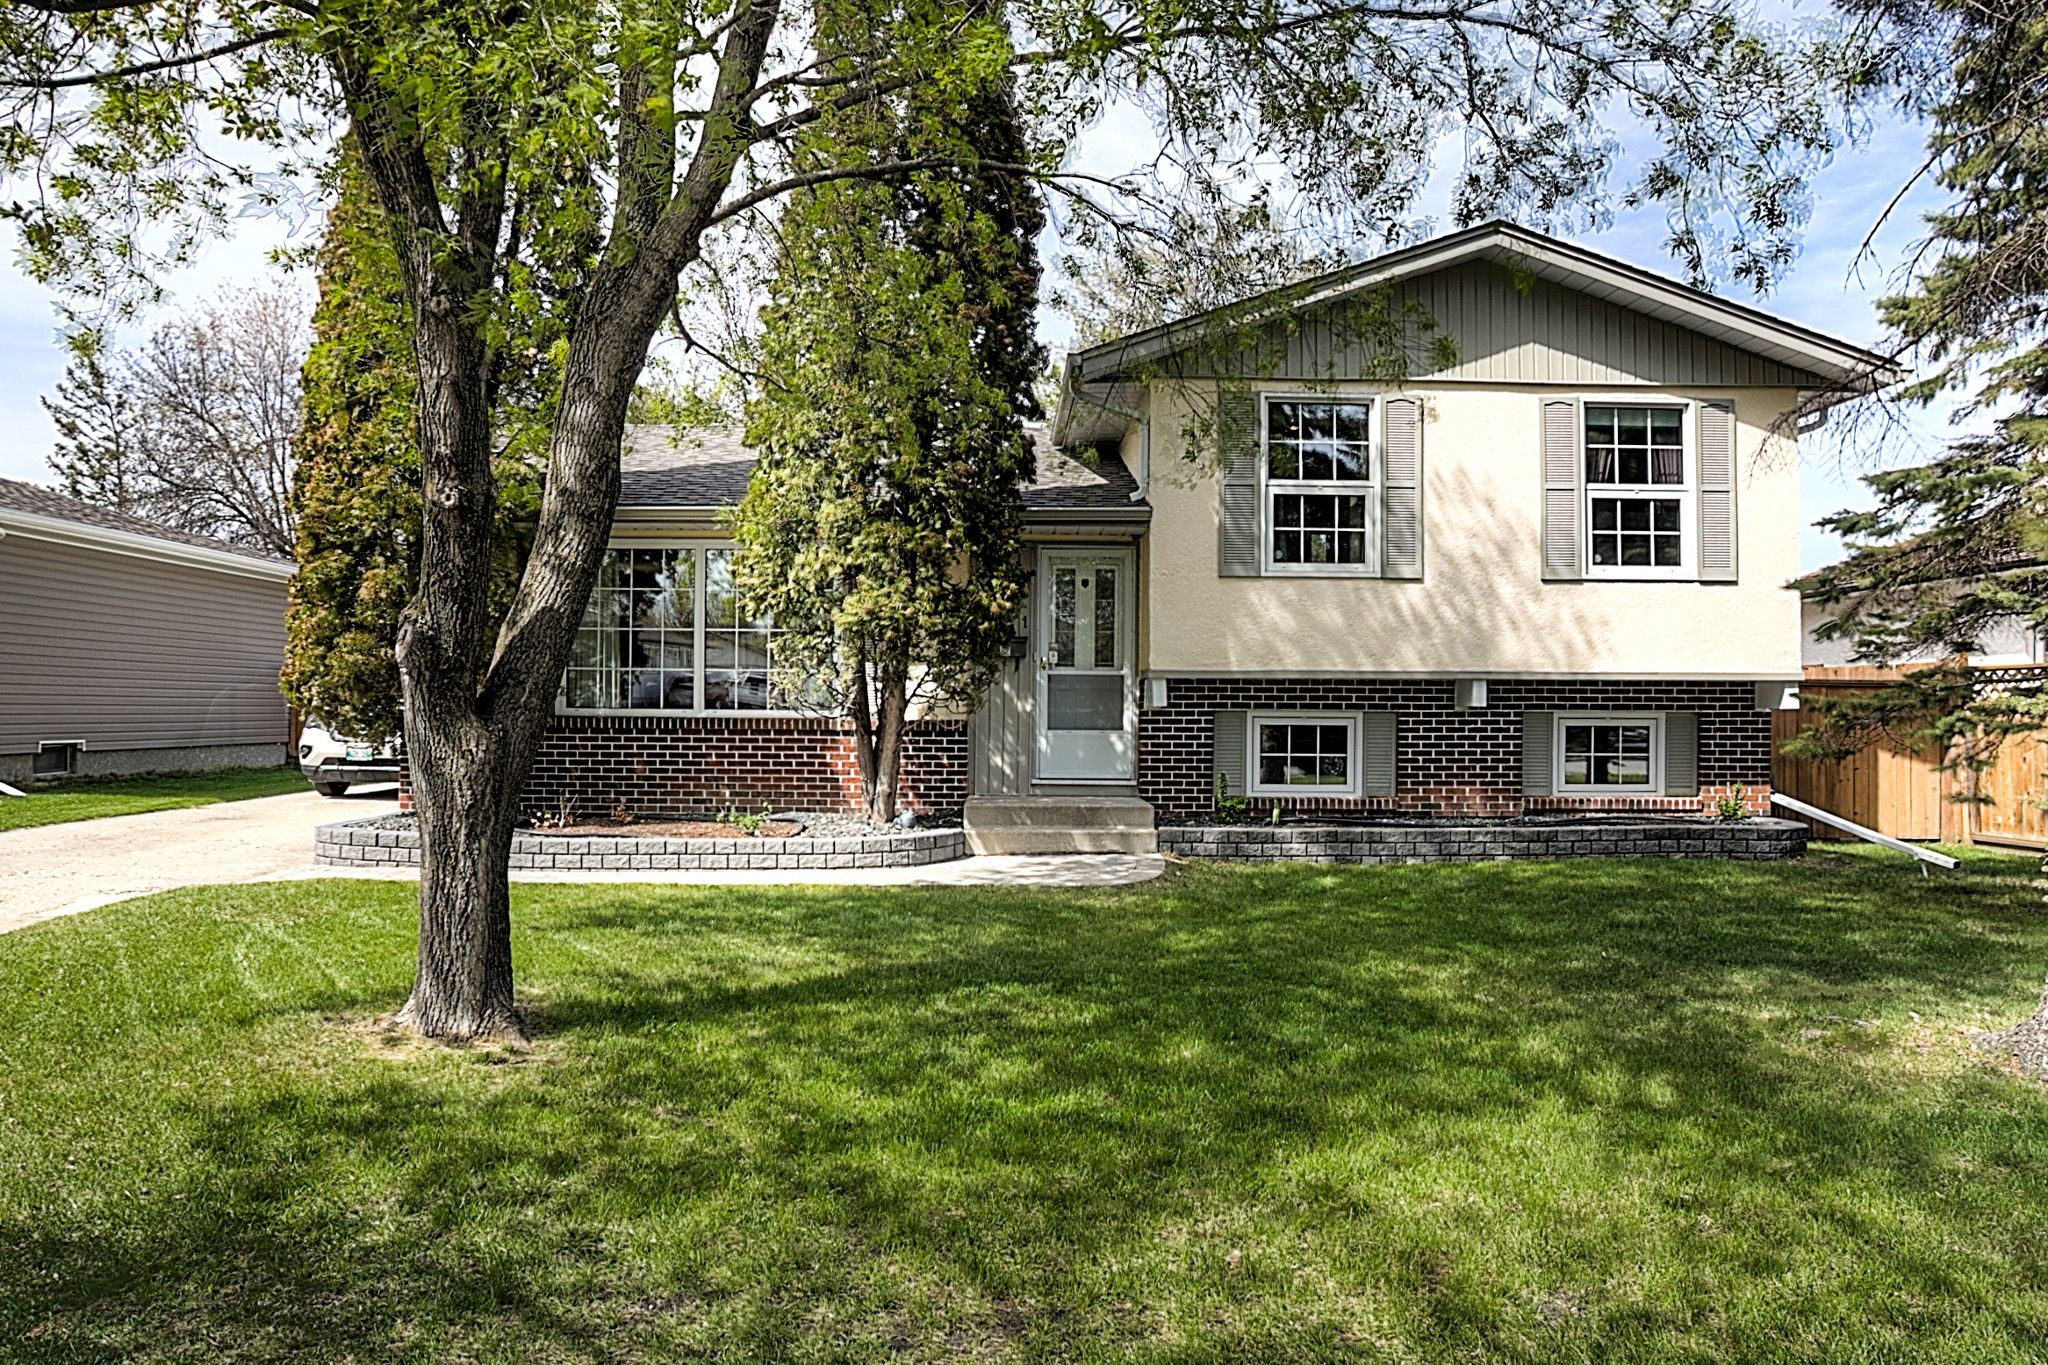 Main Photo: 6551 Rannock Avenue in Winnipeg: Charleswood Single Family Detached for sale (1G)  : MLS®# 1913241